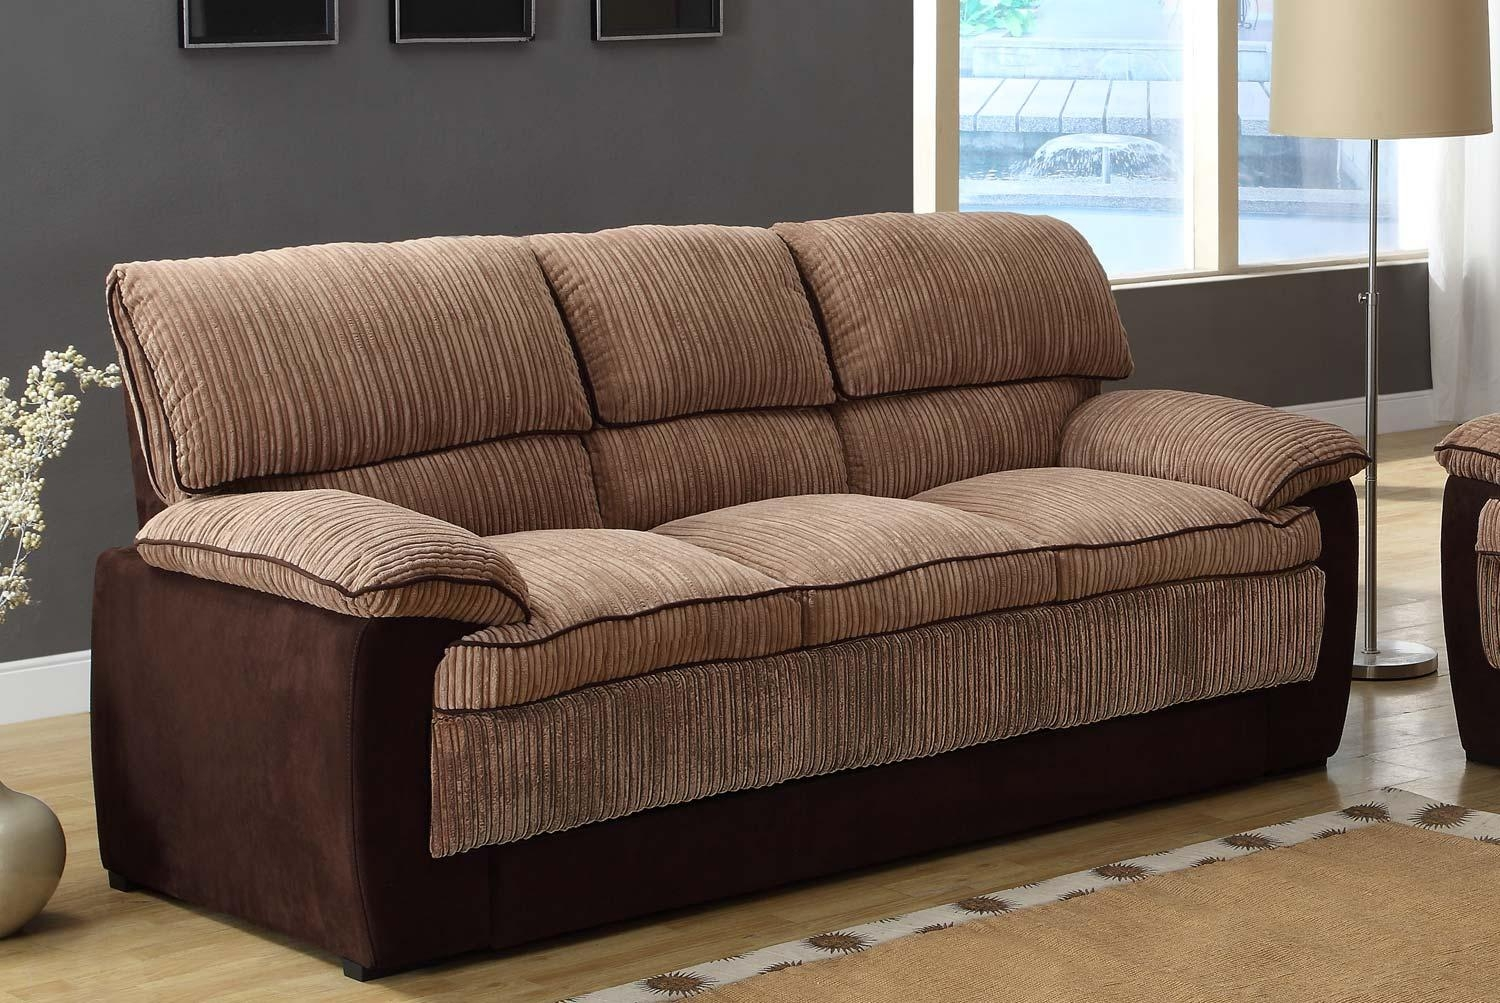 Homelegance Mccollum Sofa Brown Corduroy And Microfiber 9746 3 Intended For Sofas